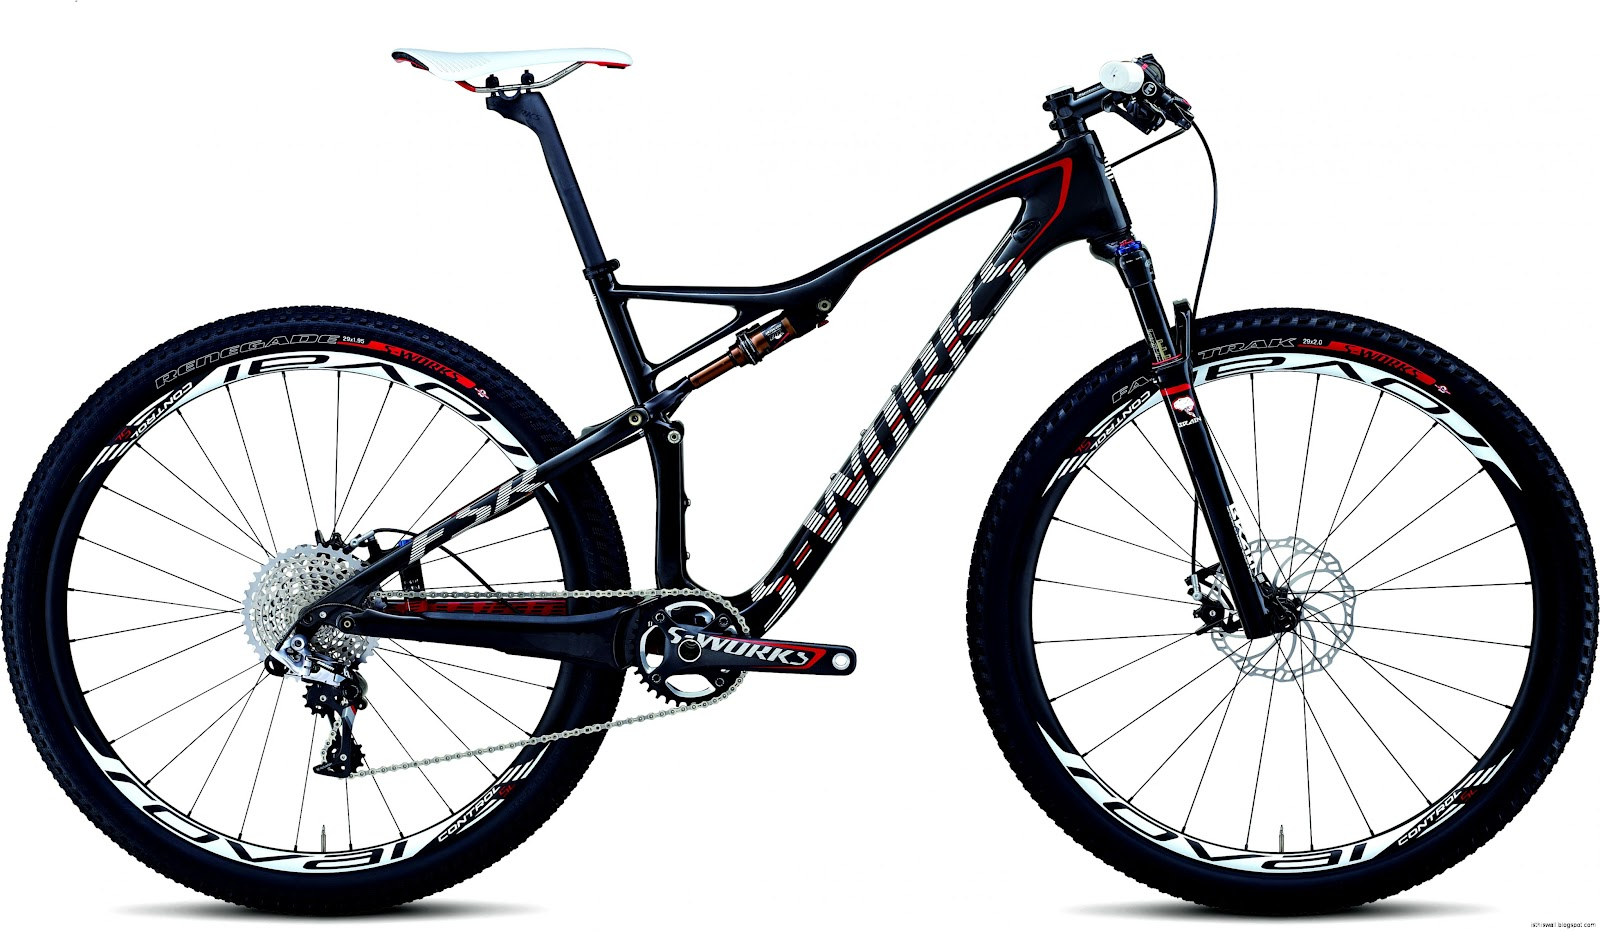 Works 2014 Epic World Cup 29er Full Suspension Mountain Bike Image